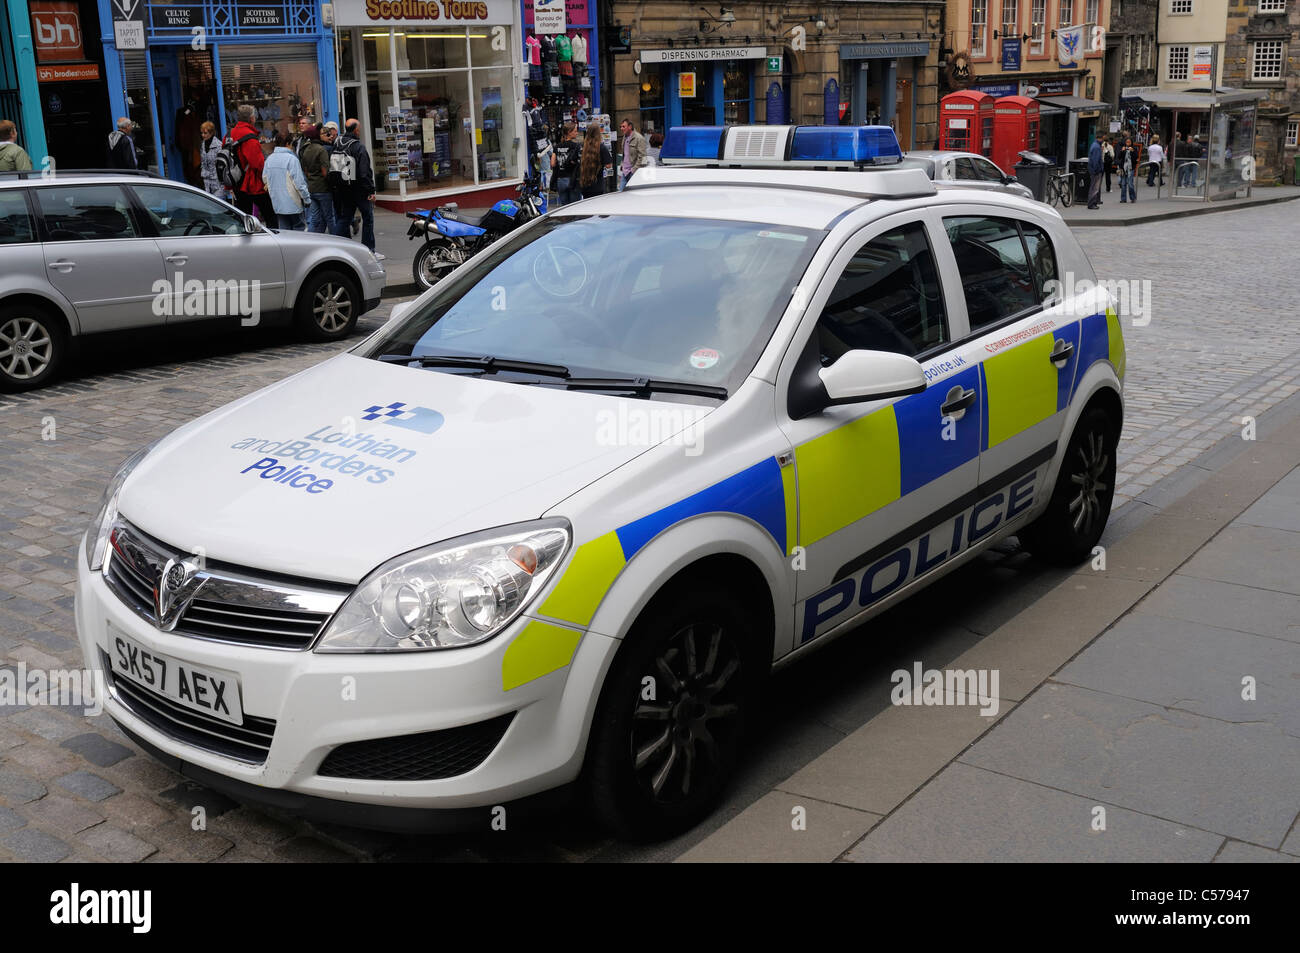 lothian-and-borders-police-car-parked-on